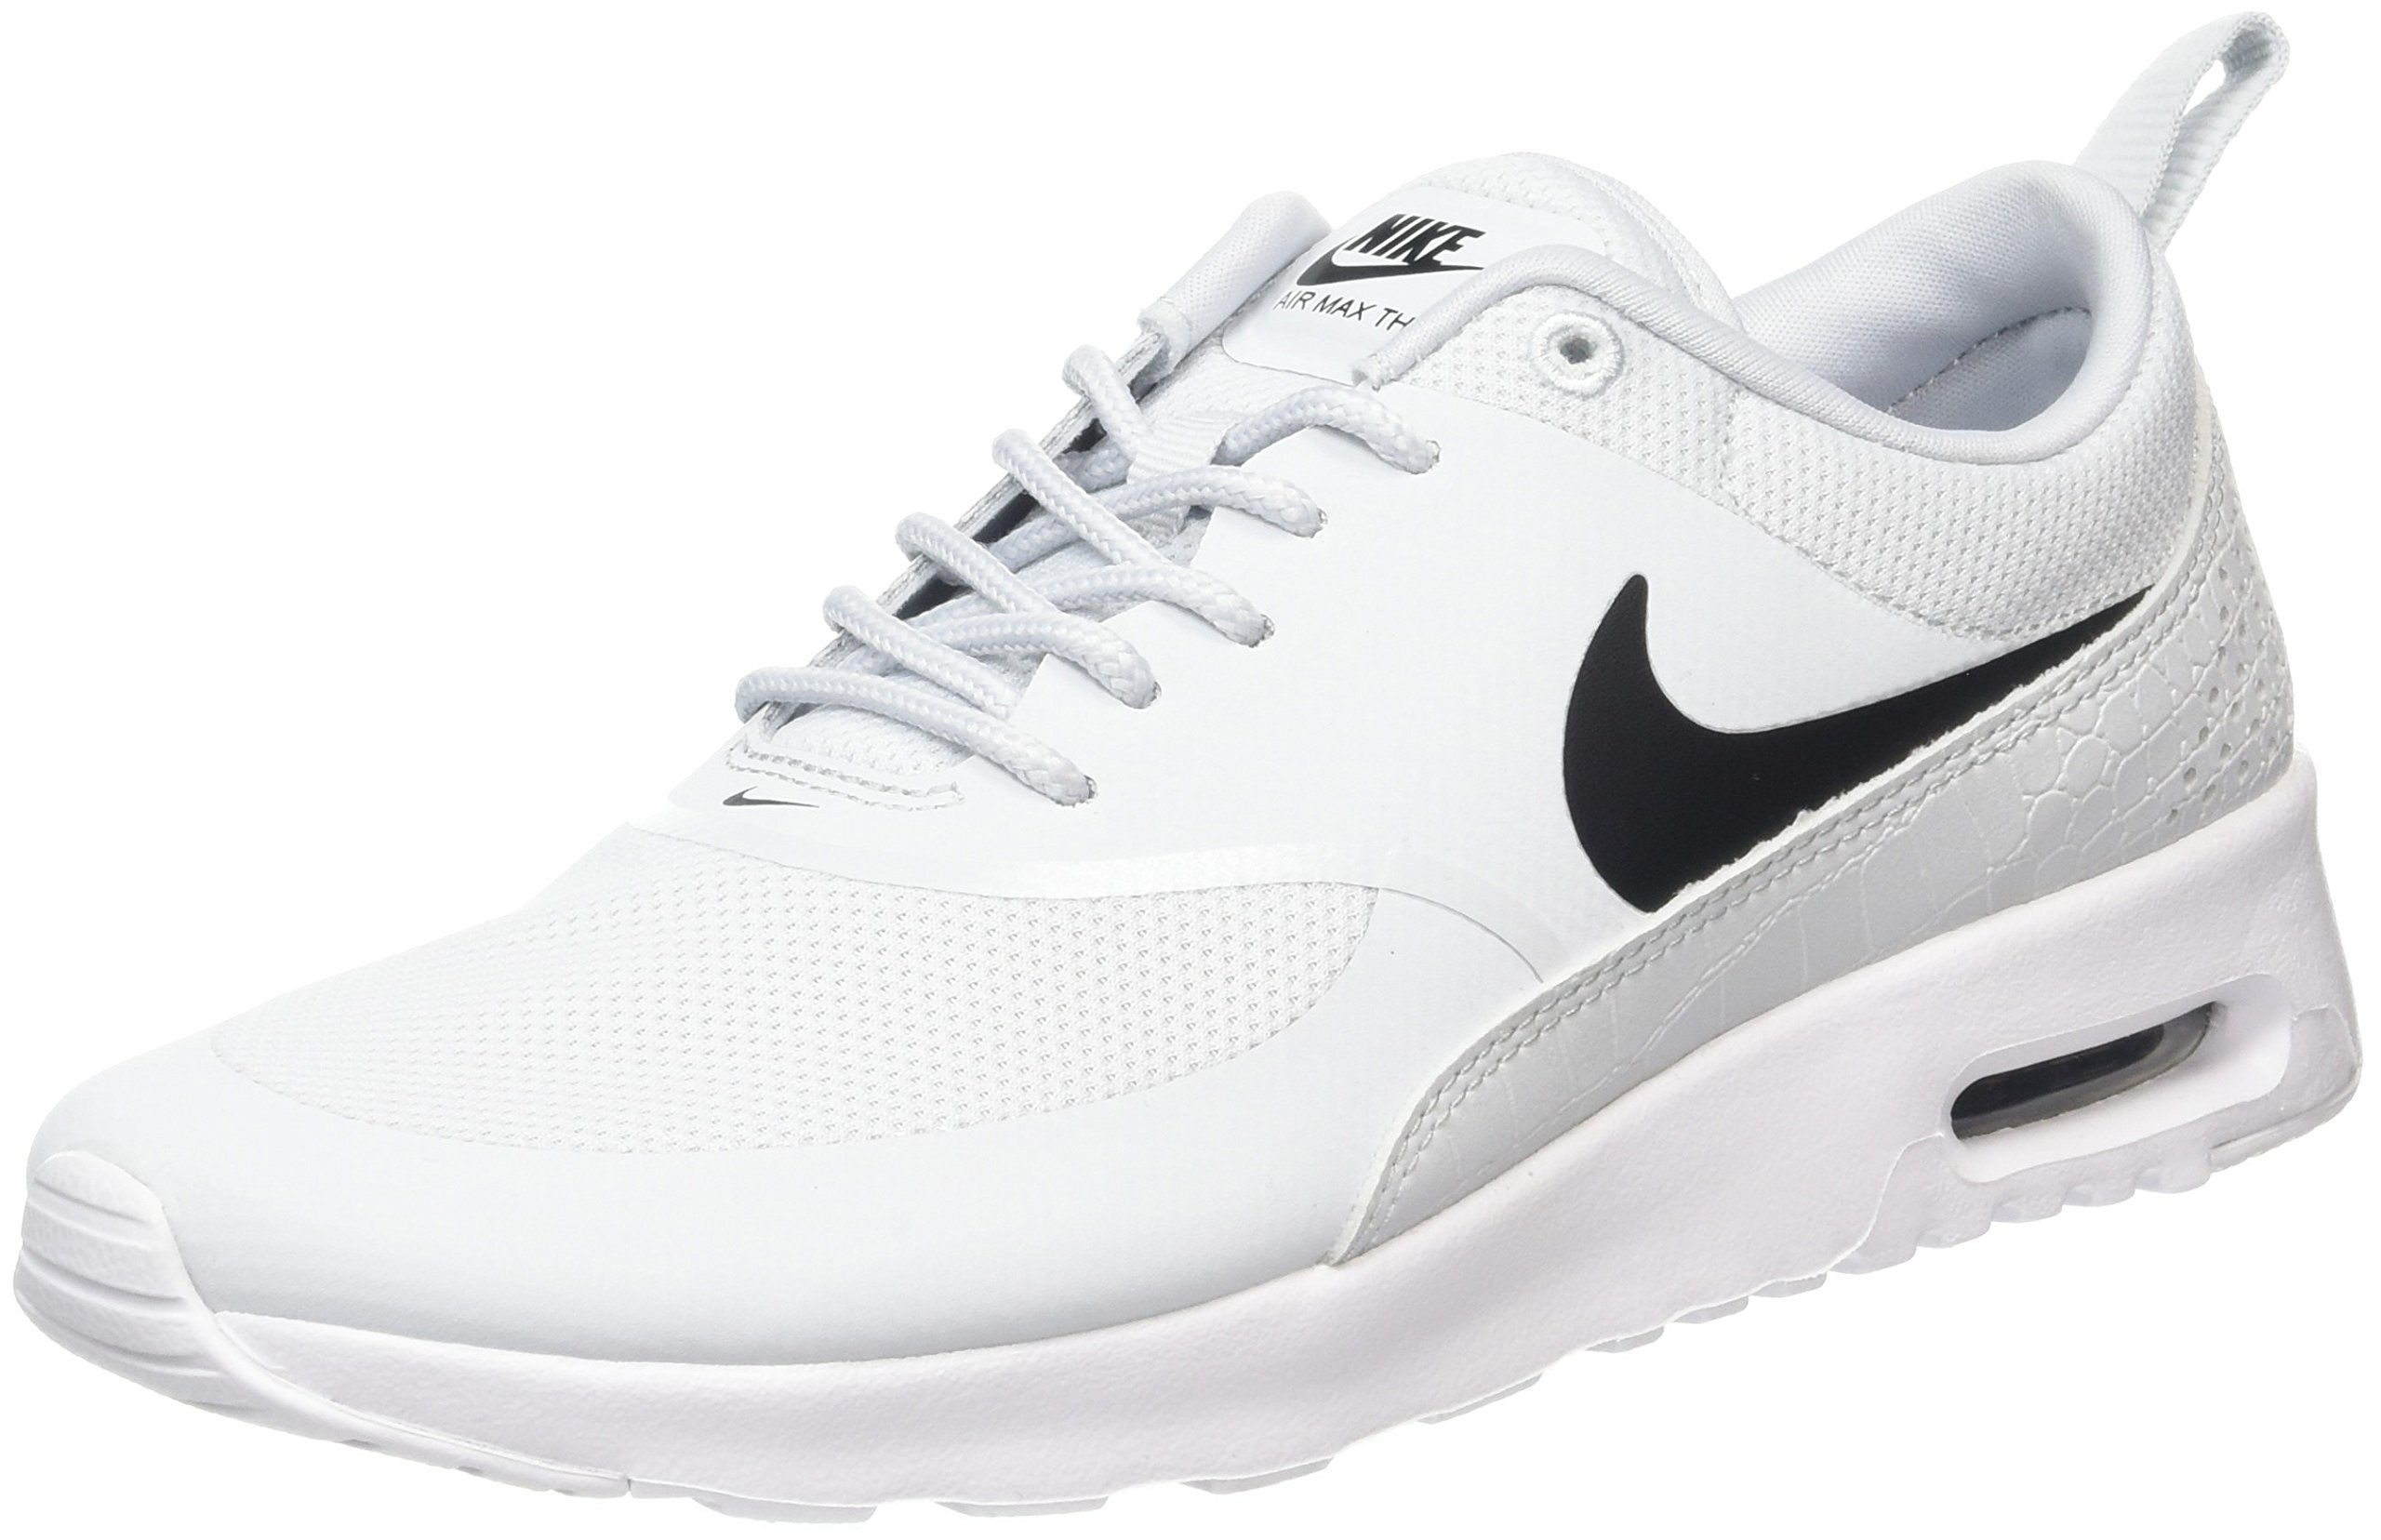 Nike Women's Air Max Thea Low Top Sneakers, Grey (Pure PlatinumBlack White), 7.5 UK